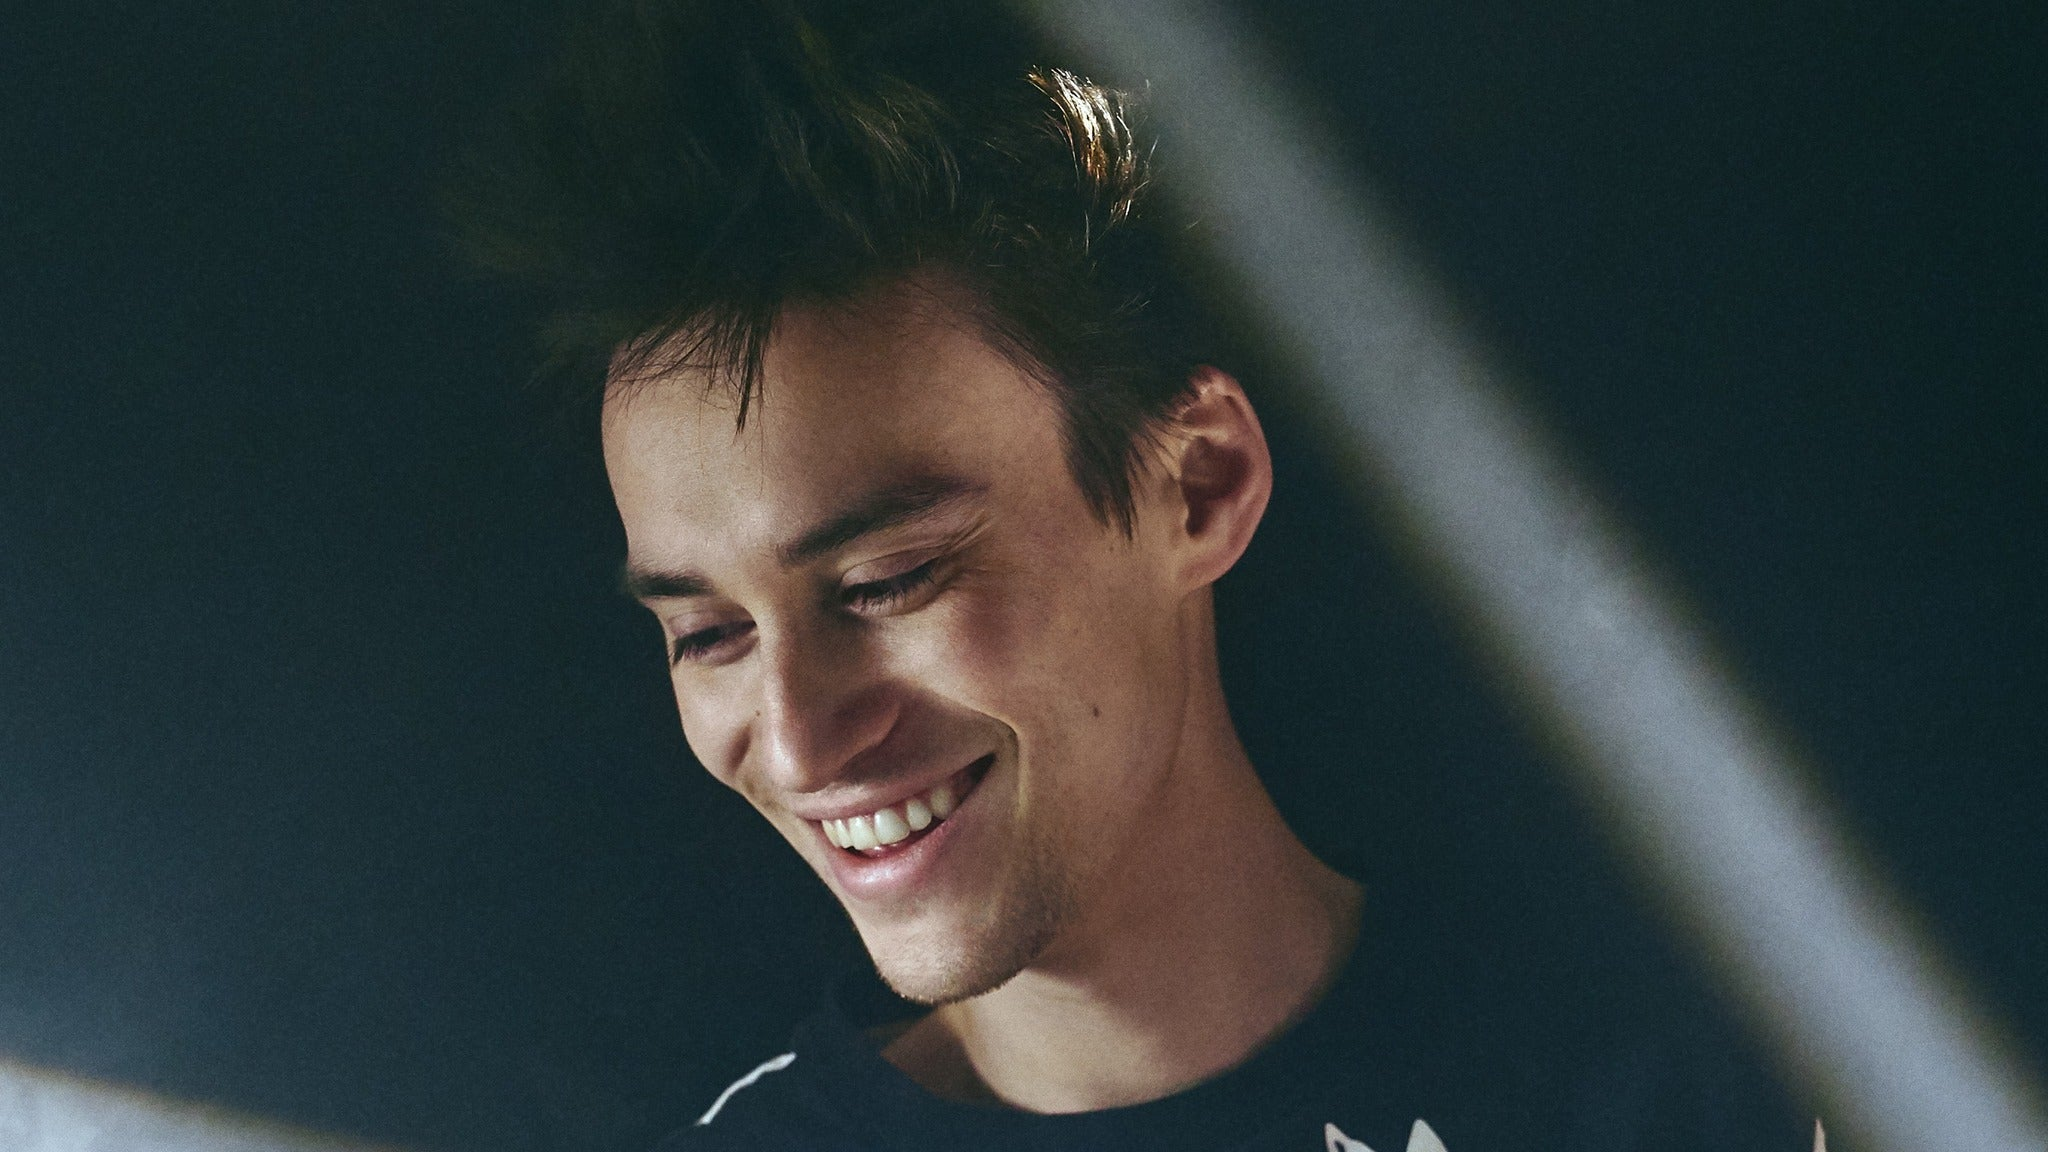 New Date - Jacob Collier - DJESSE World Tour Spring 2022